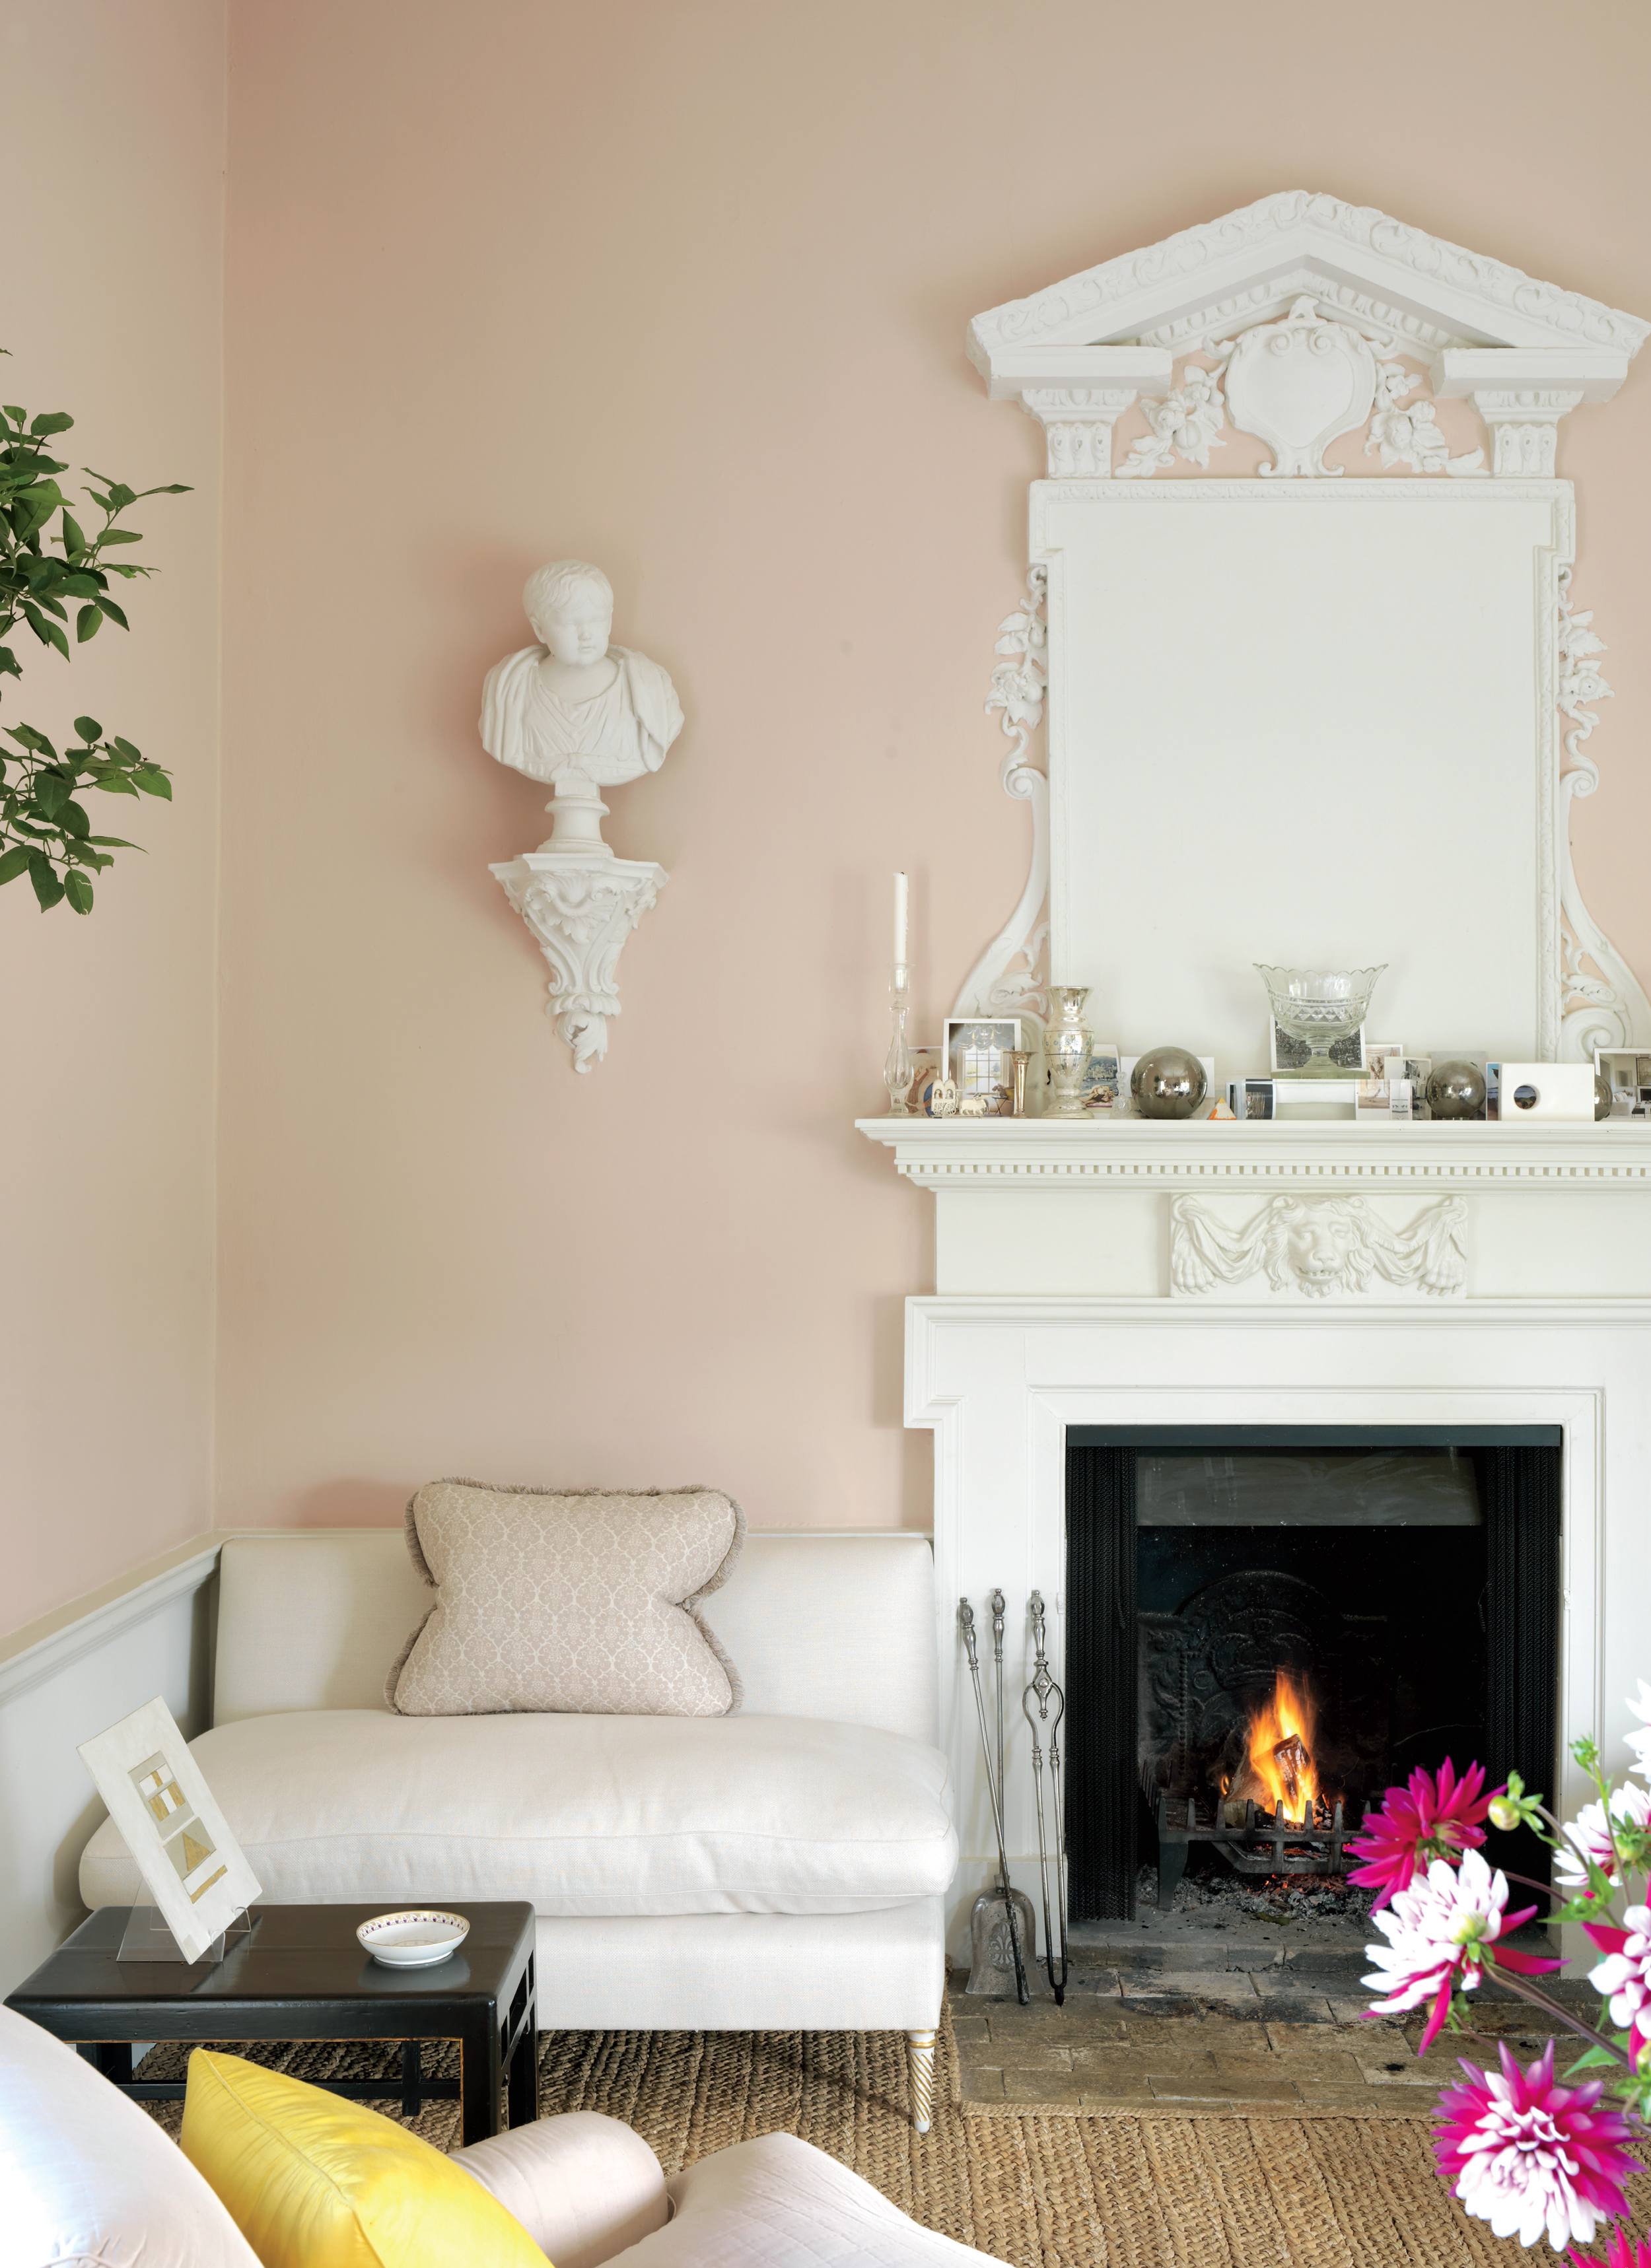 The Temple of the Four Seasons | Cristopher Worthland Interiors